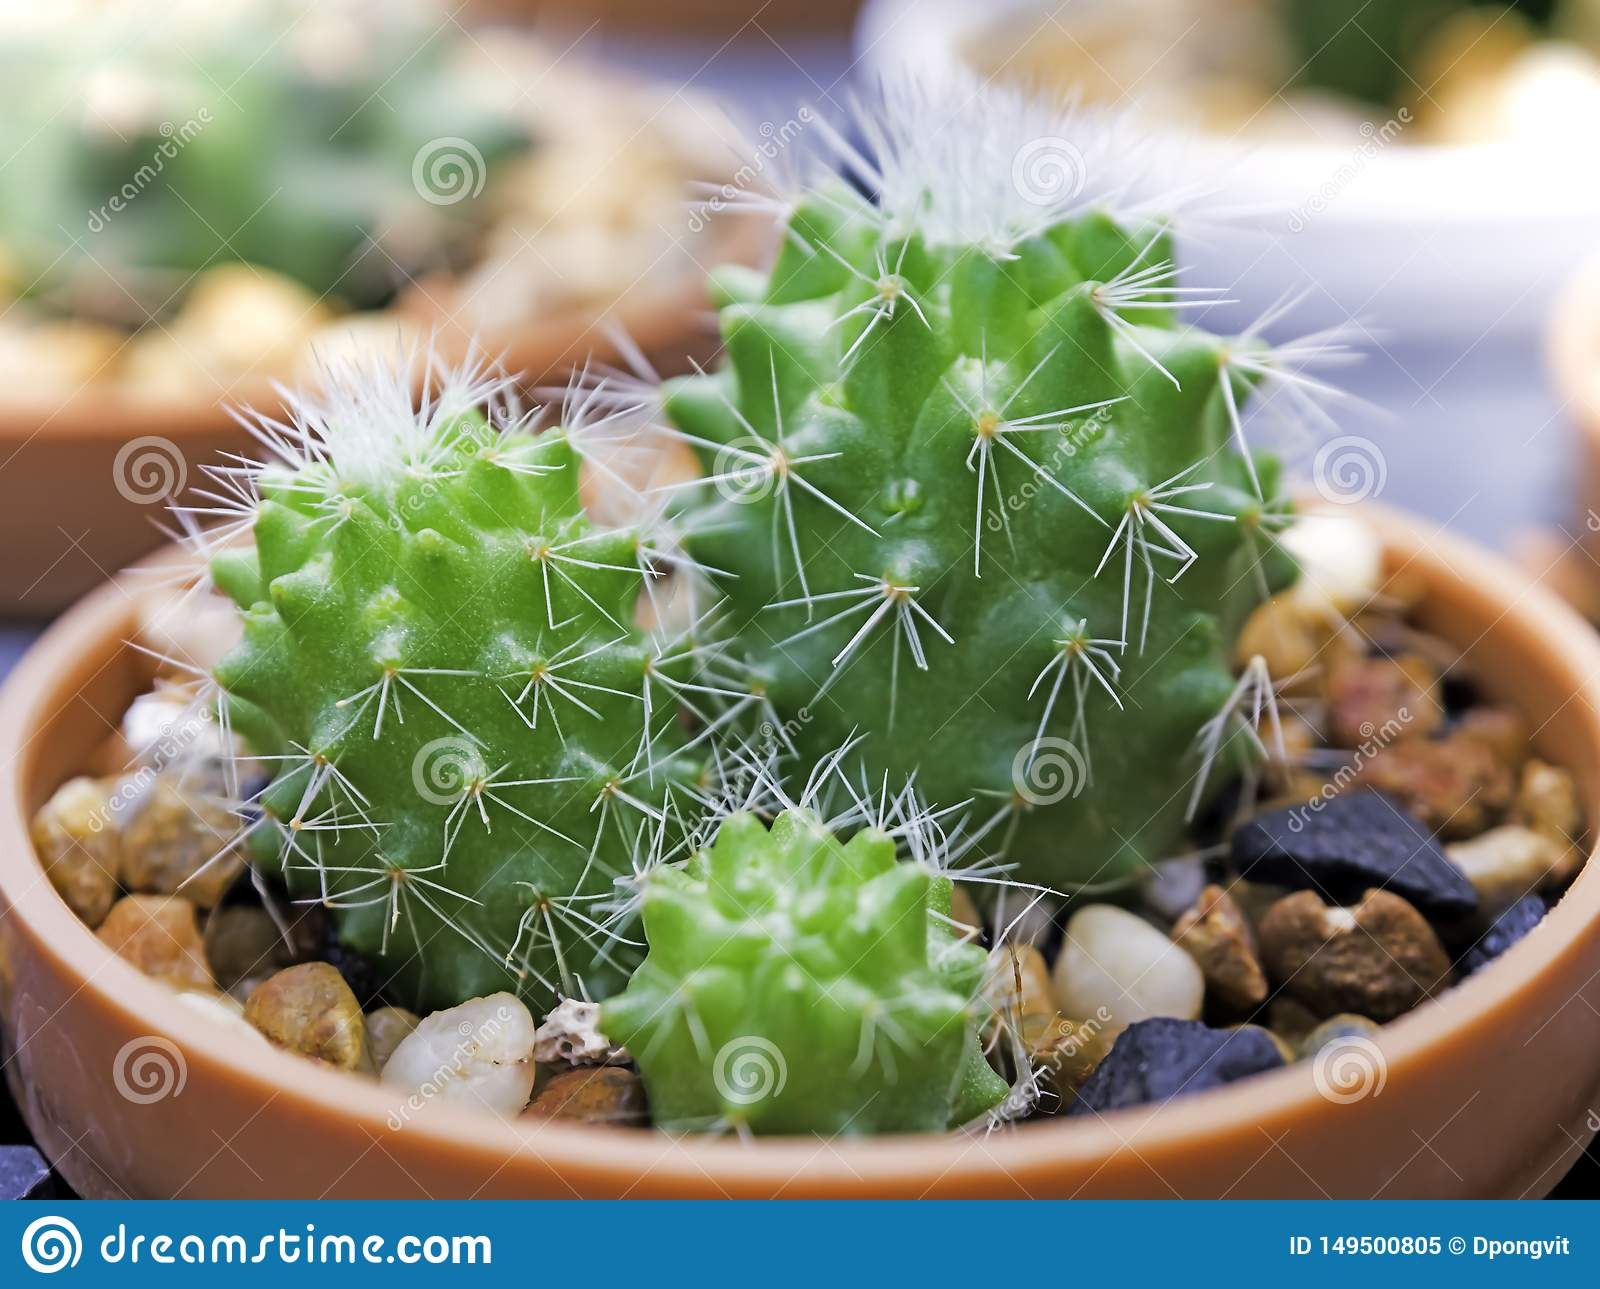 Cactus Small cute in the pot in the garden outside